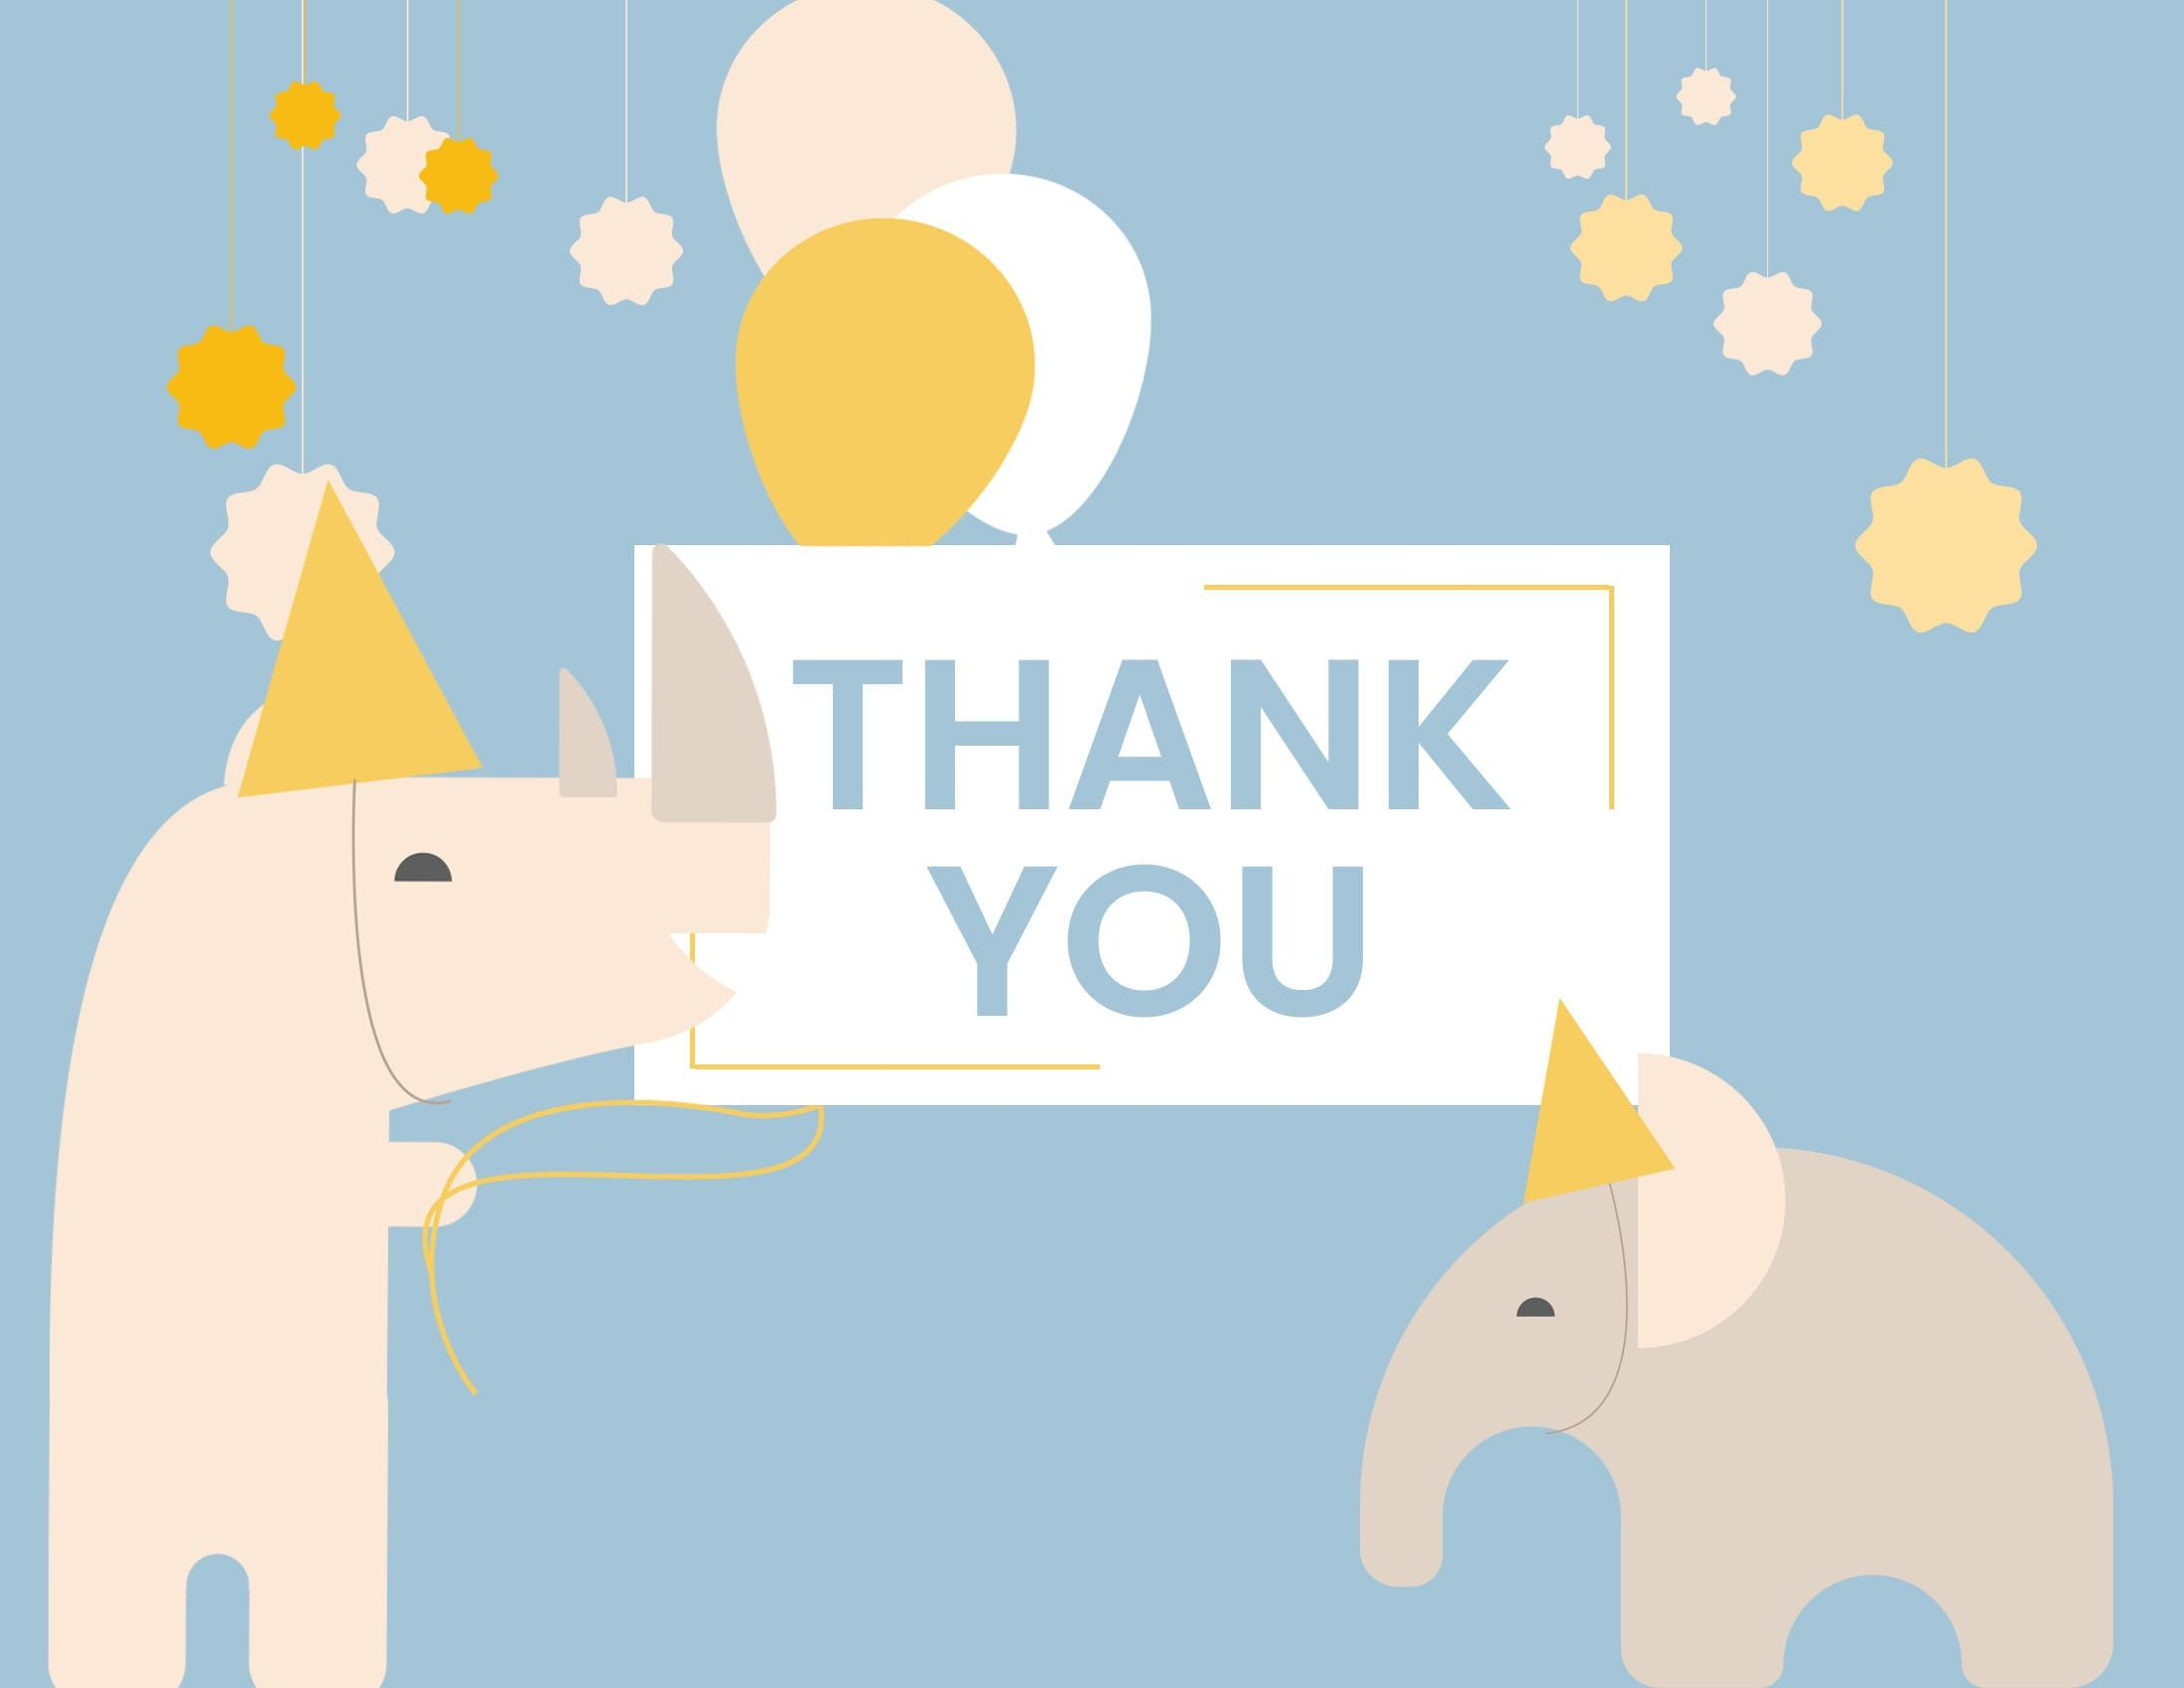 009 Remarkable Thank You Card Wording For Baby Shower Group Gift Highest Clarity Full